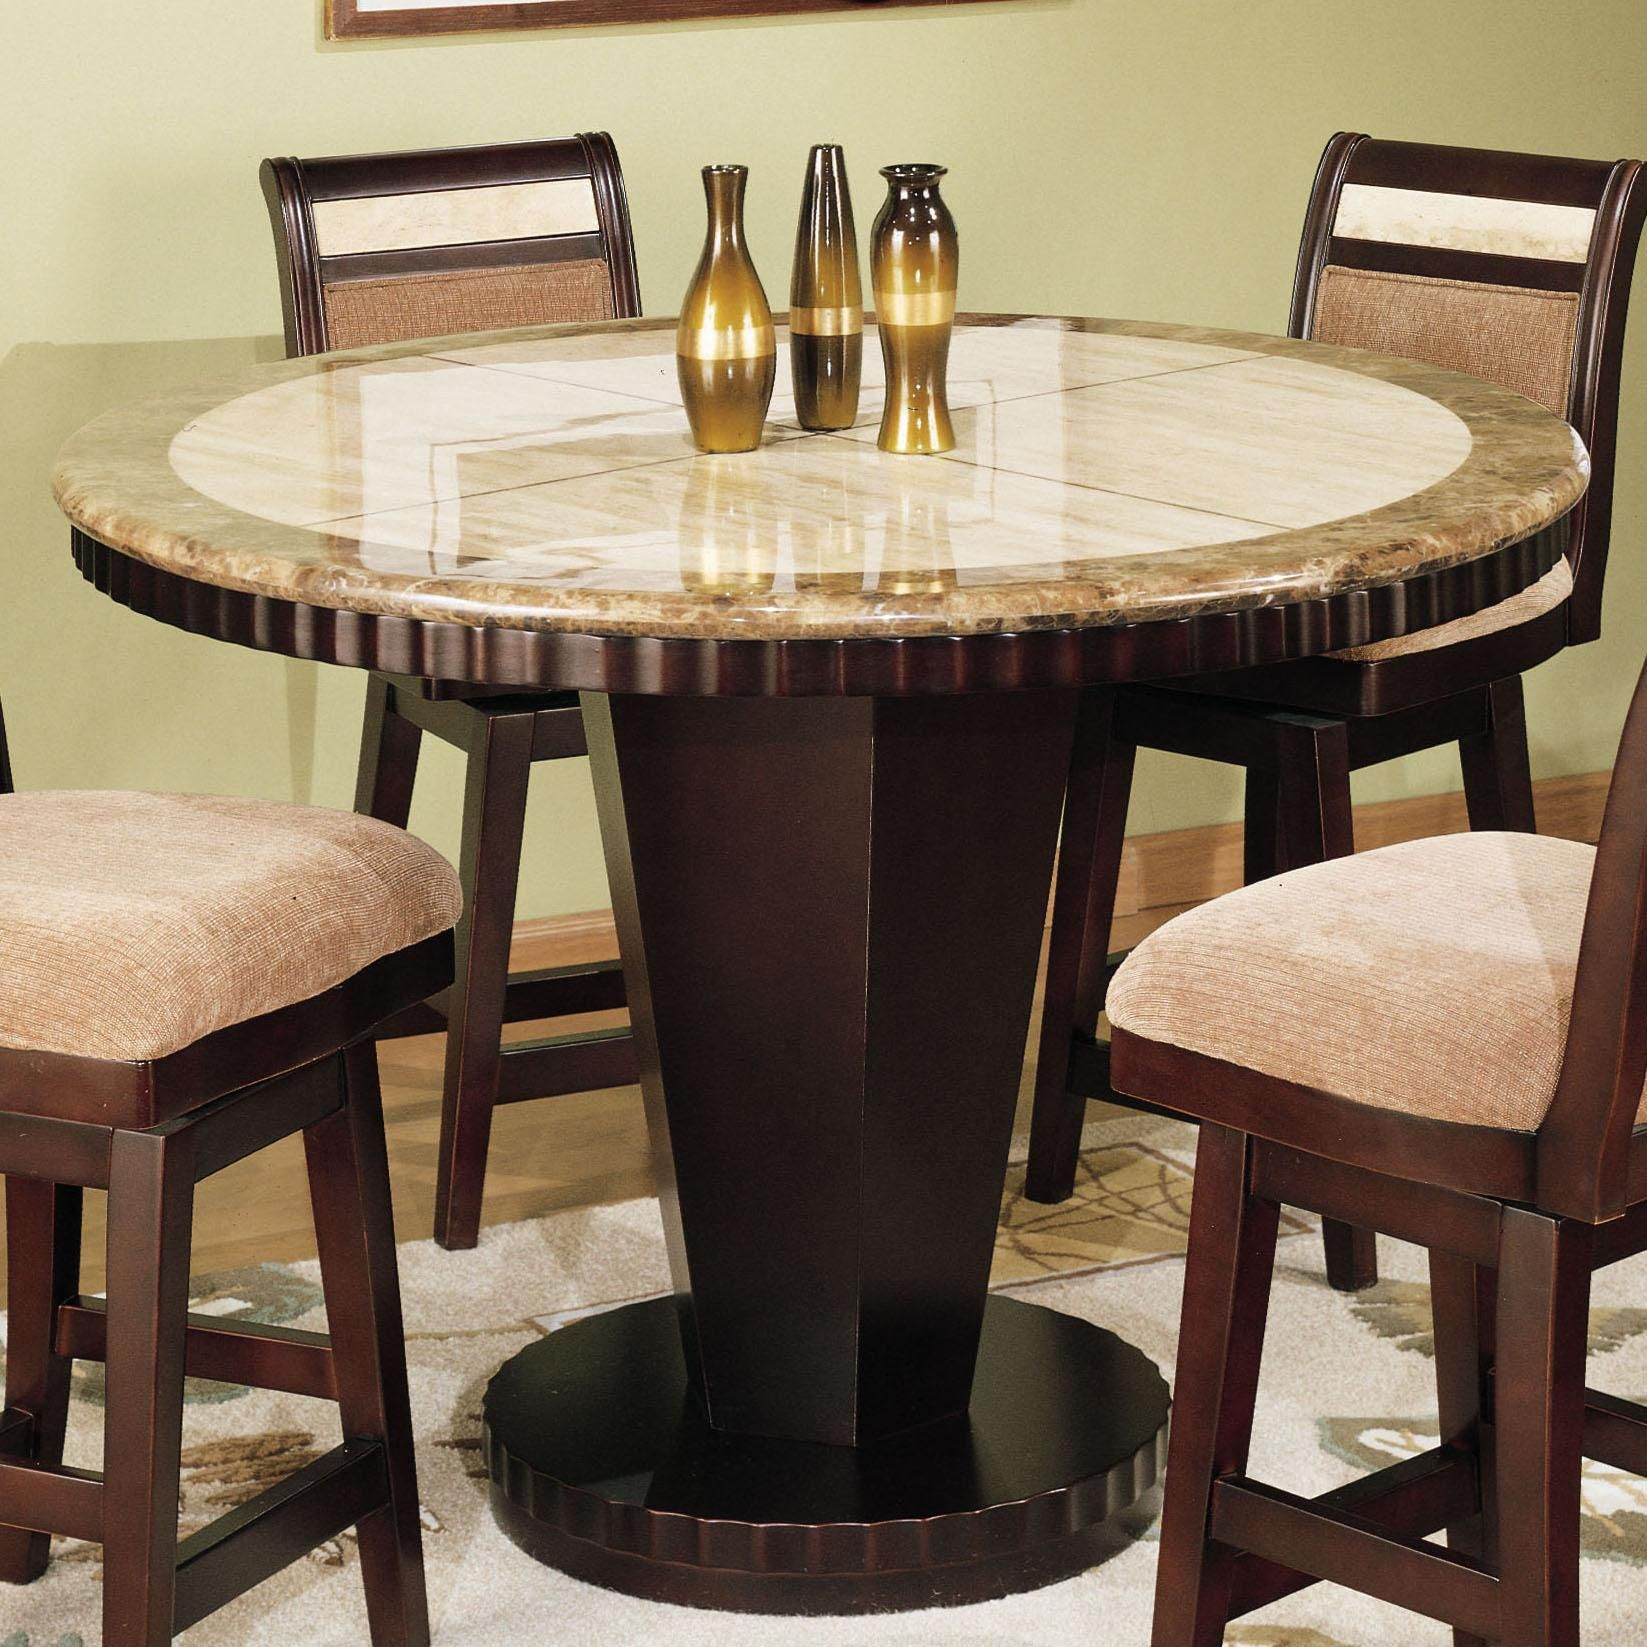 Corallo Dining Round Stone Top Counter Height Dining Table By Armen Living At Olinde S Kitchen Table Settings Counter Height Kitchen Table Dining Table Chairs